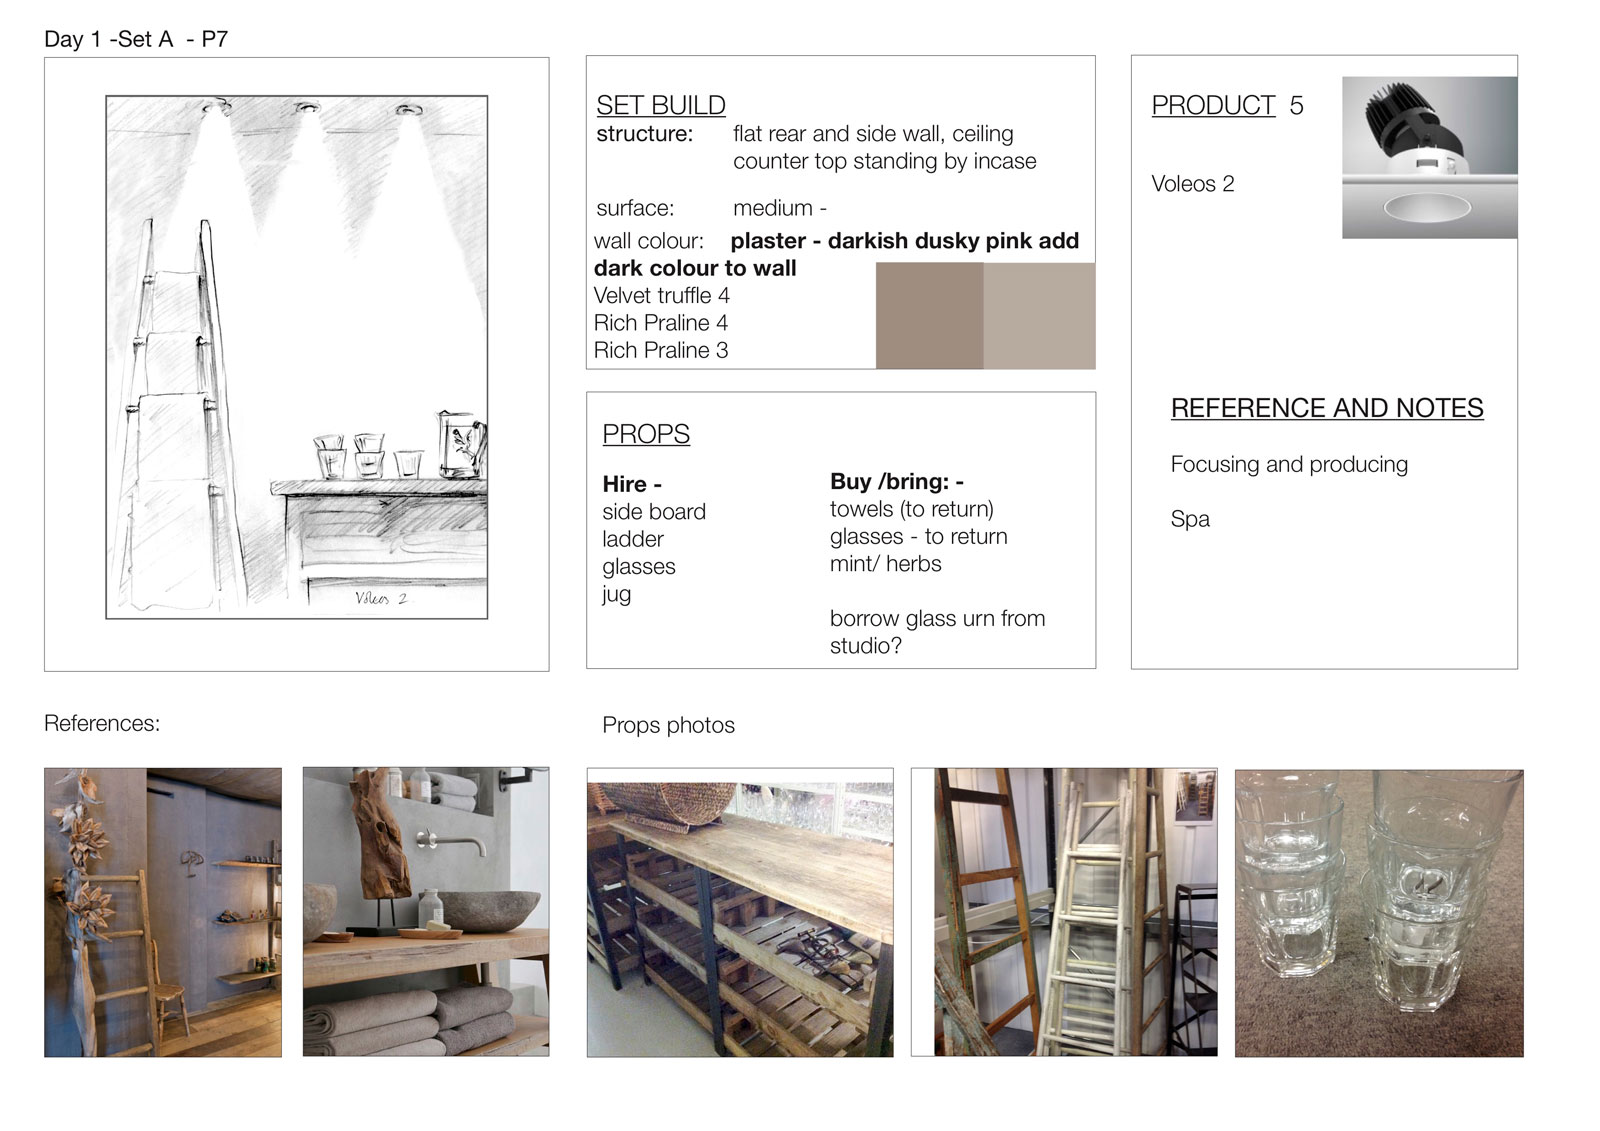 [G]-DLL-scheduled-styling-sheets-3_web.jpg